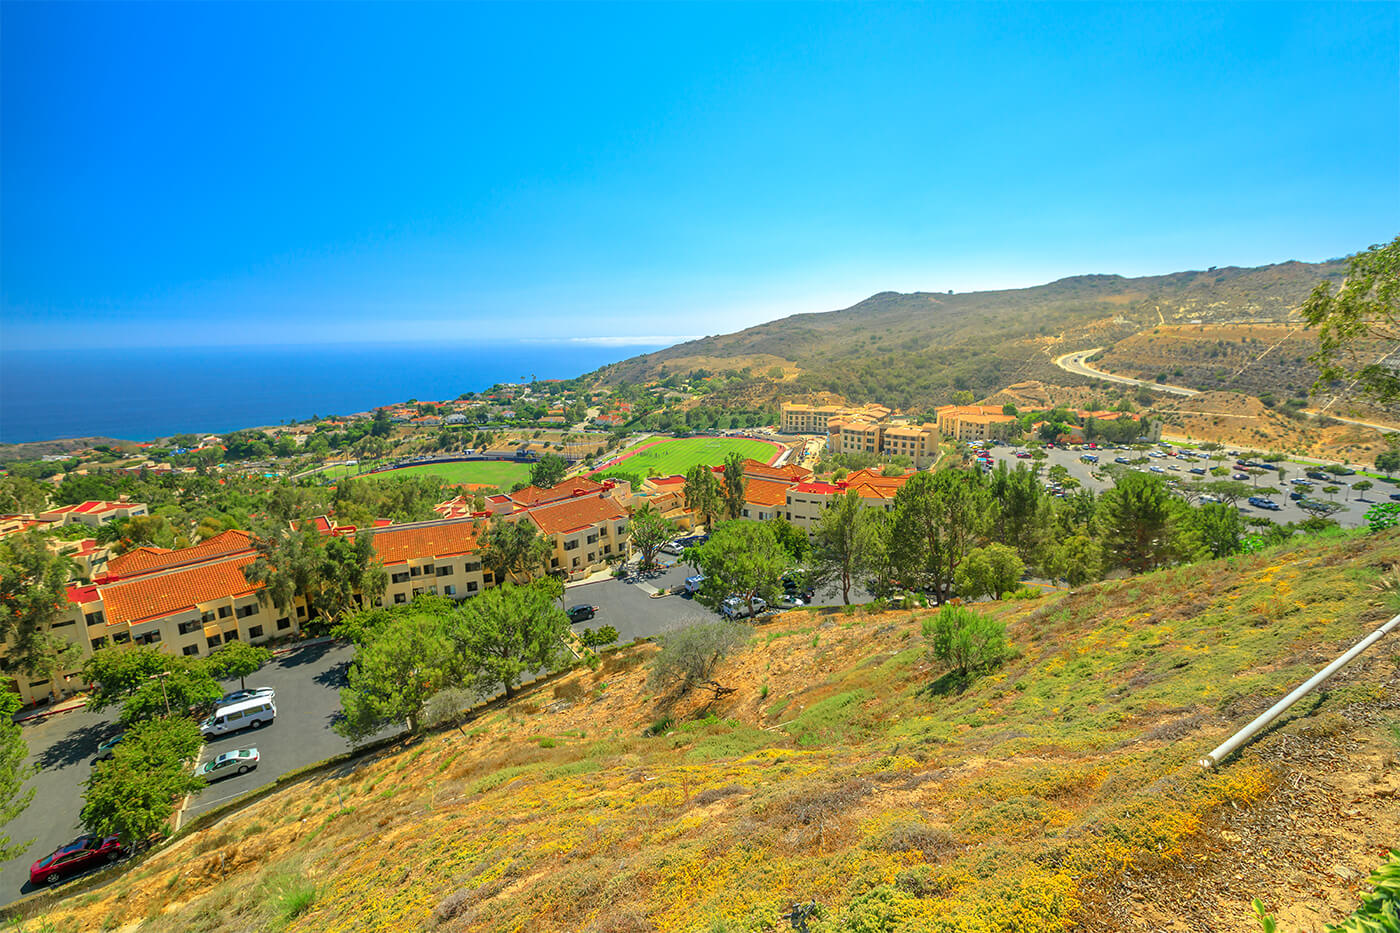 Pepperdine University in Malibu CA